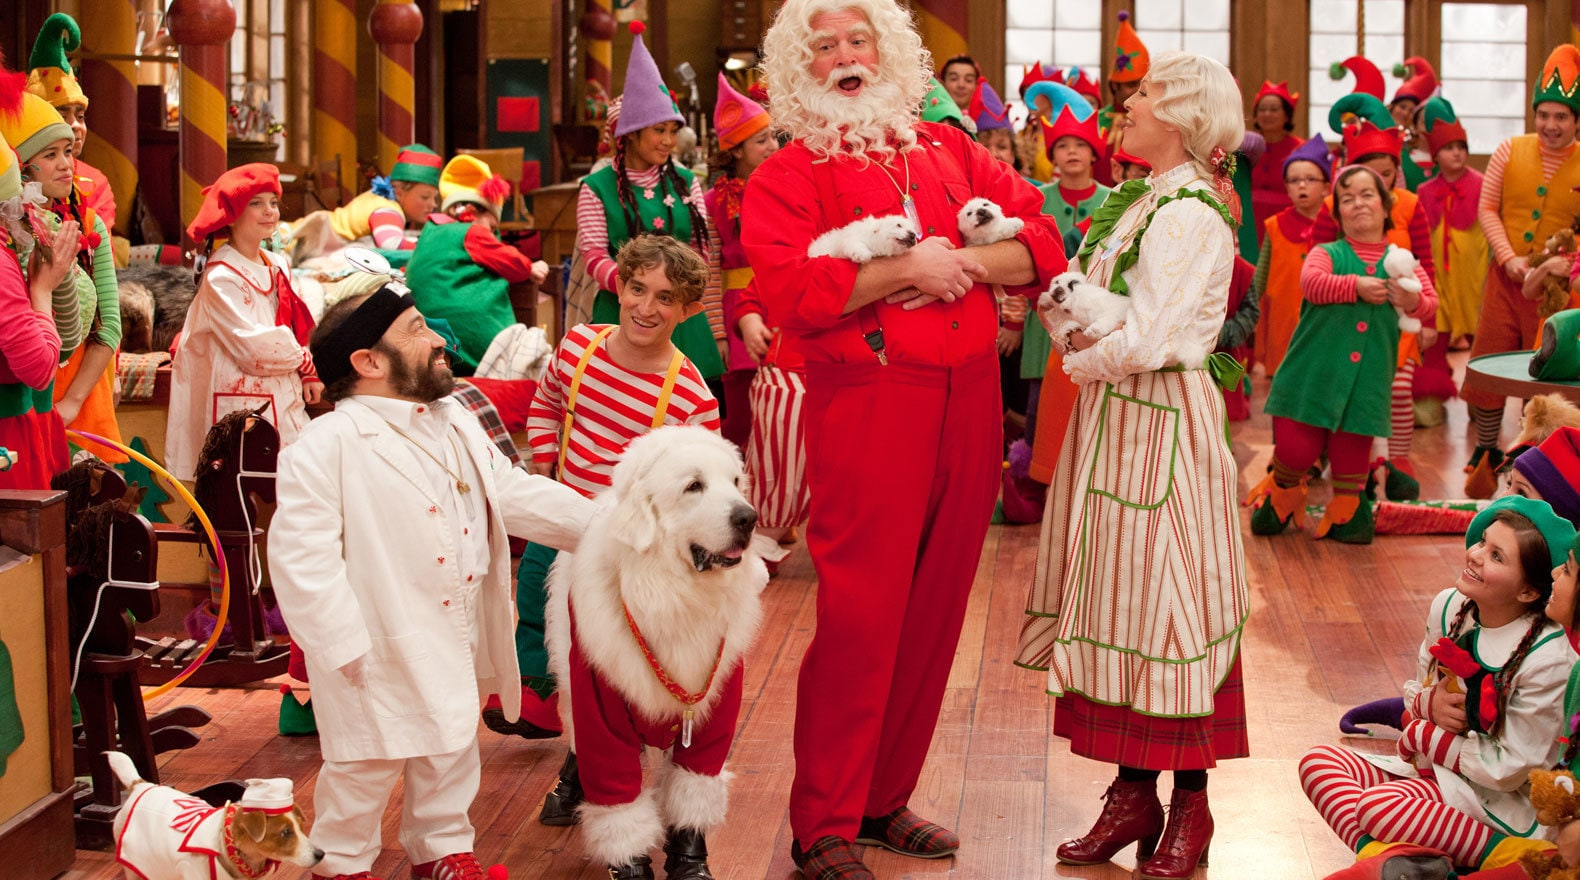 Santa, Mrs. Clause, and his dog standing with elves in Santa's workshop